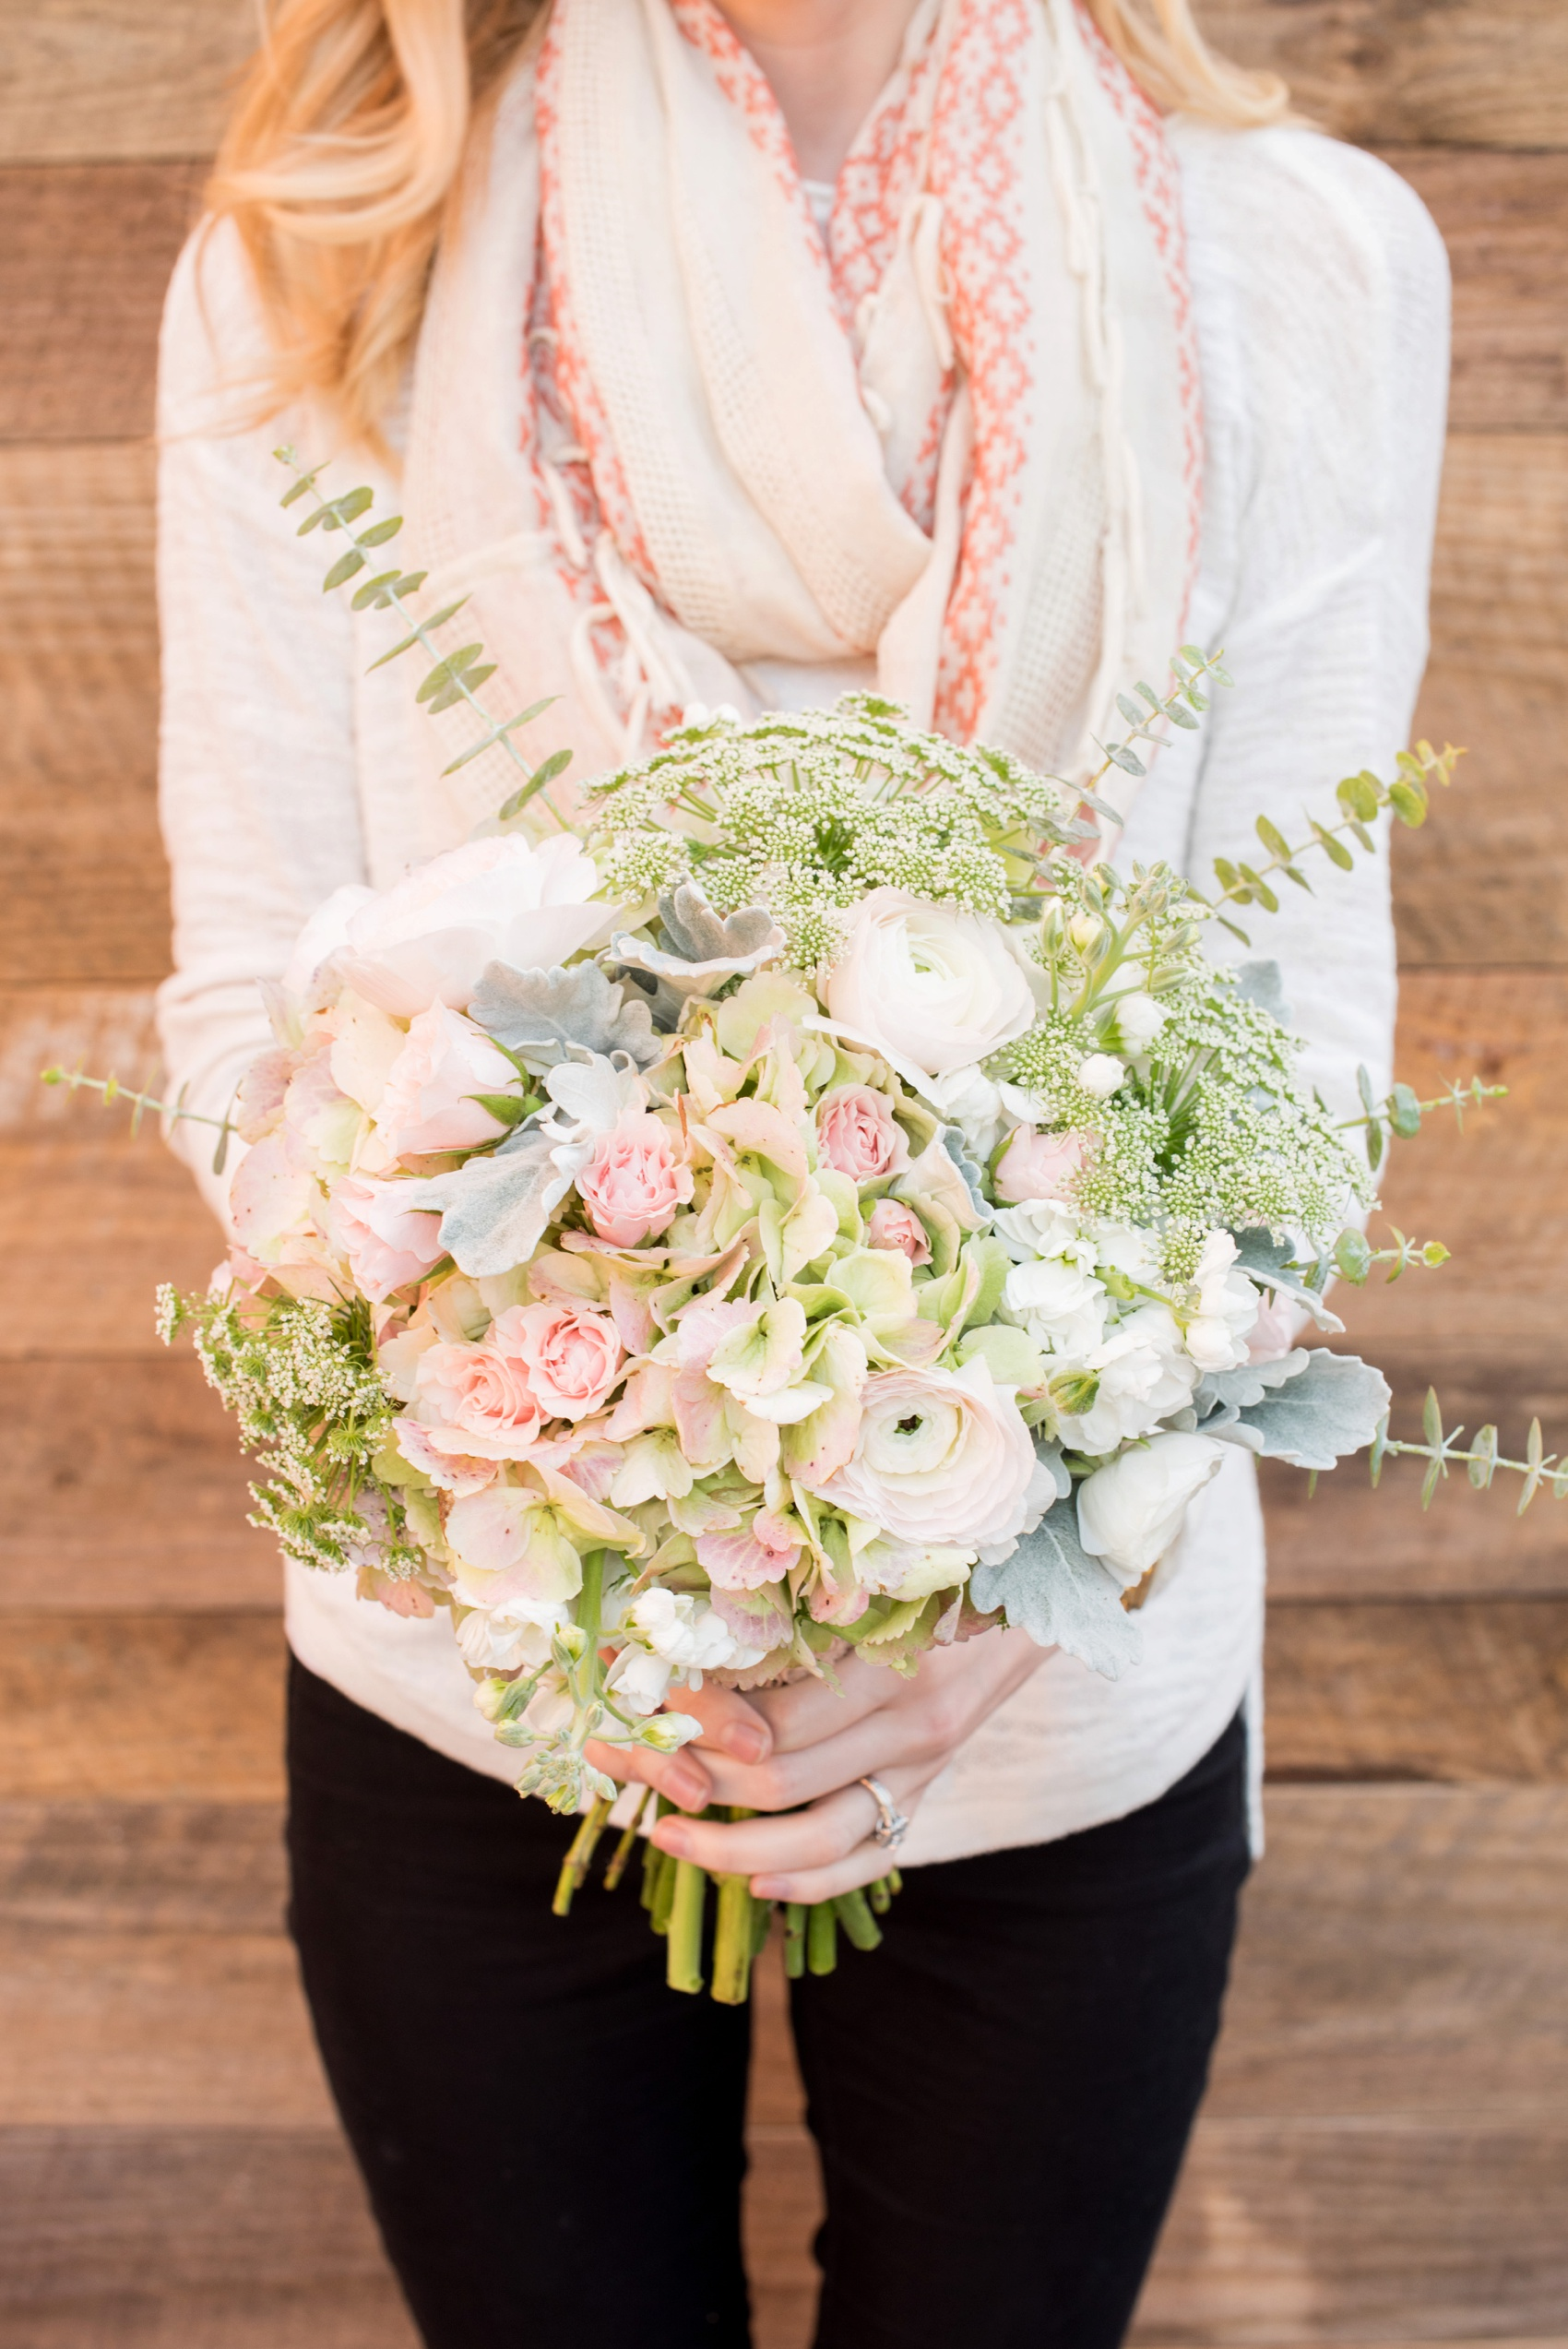 The Cloth Mill North Carolina wedding vendor showcase. Raleigh, Durham and Hillsborough vendors at a rustic, modern location. Knots n Such wedding planner pink, green and white bouquet with tea sweetheart roses, eucalyptus, dusty miller and hydrangea.